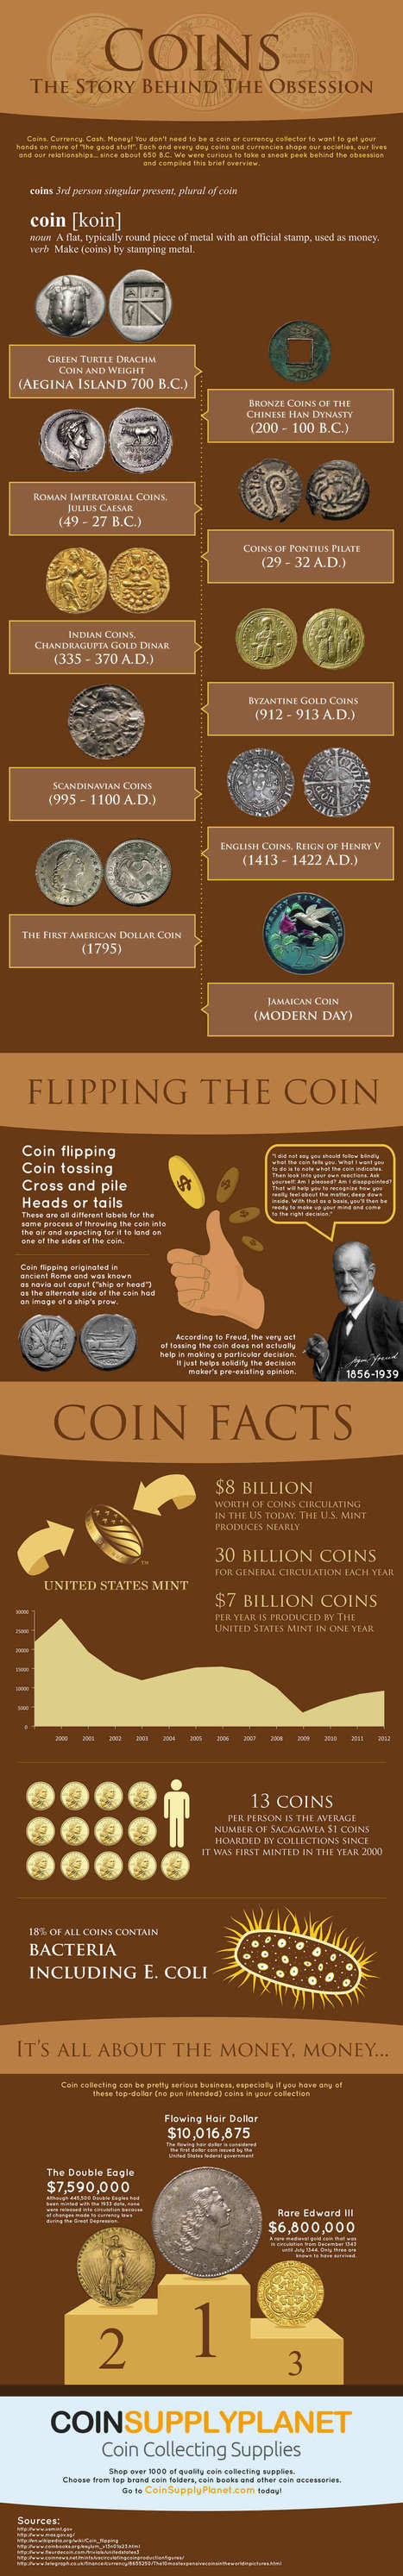 Secret Story behind Coin obsession | Infographic | All Infographics | Scoop.it